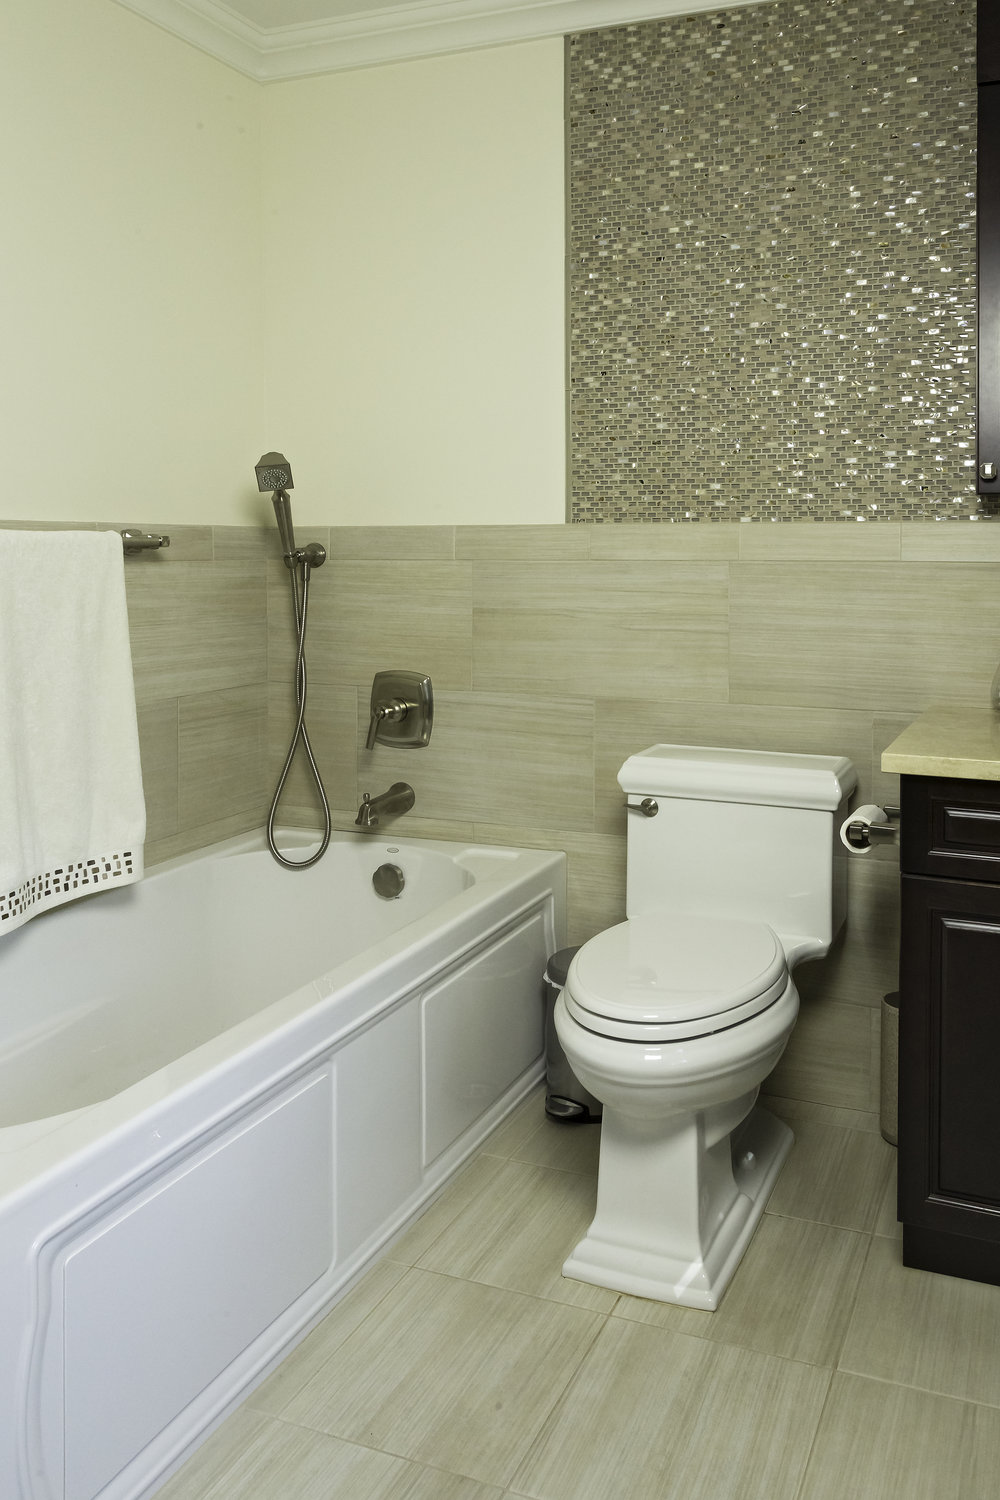 Classic style bathroom with tub next to toilet